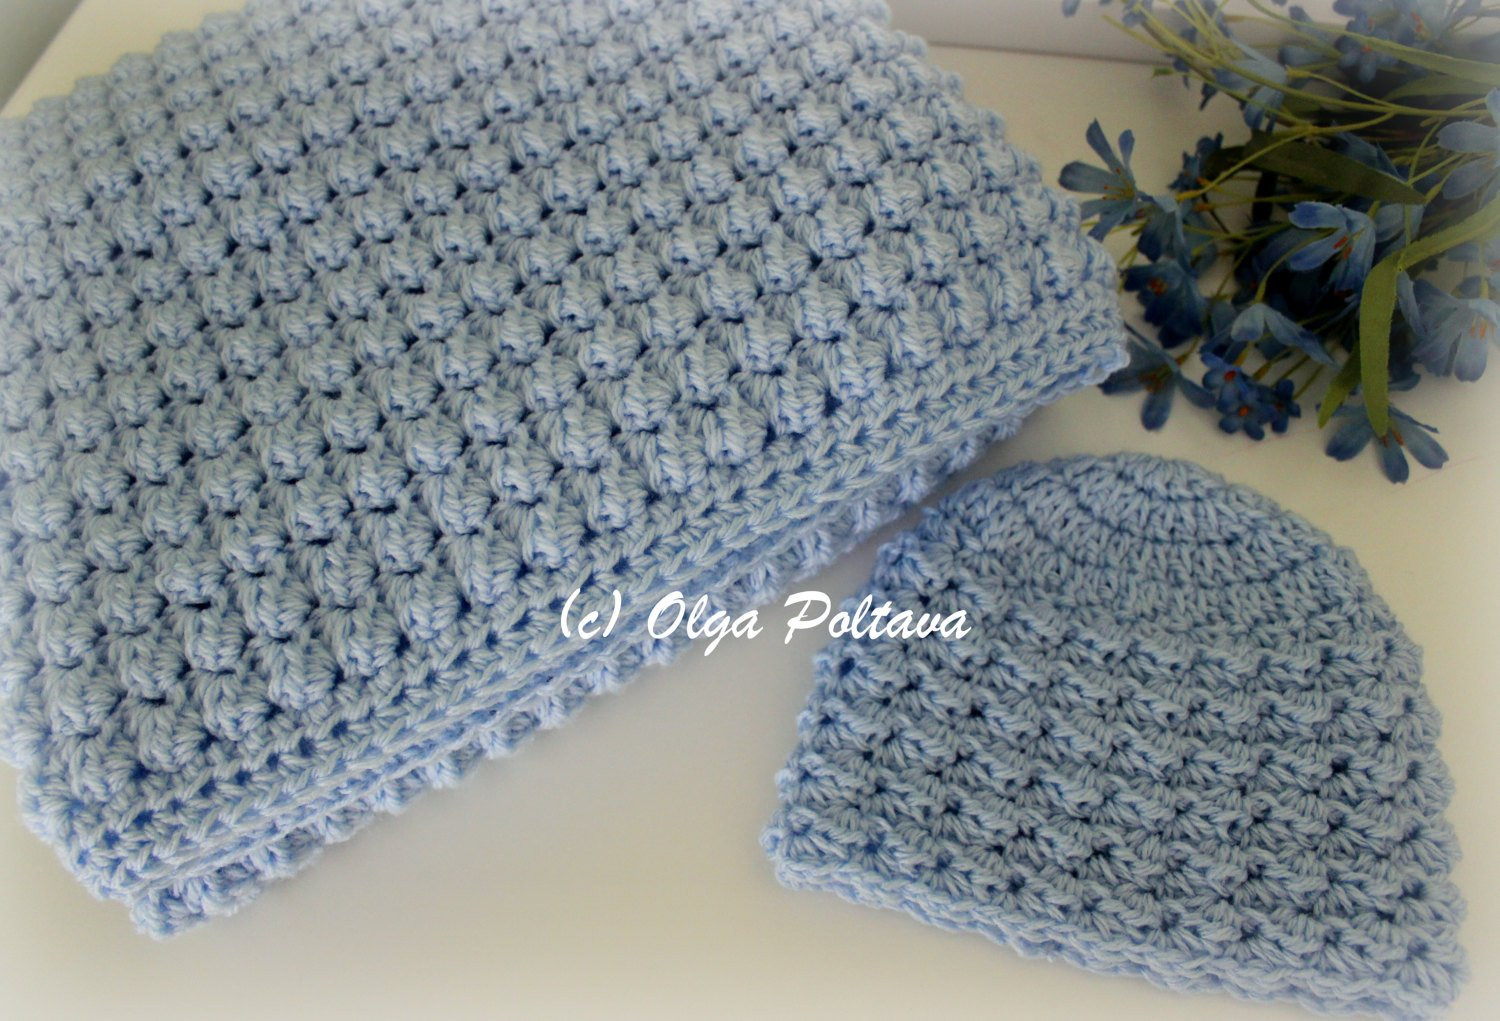 Baby Boy Crochet Blanket Patterns New Baby Boy Set Crochet Pattern Baby Blanket and Hat Easy Of Baby Boy Crochet Blanket Patterns Lovely Navy and Teal for A Baby Boy